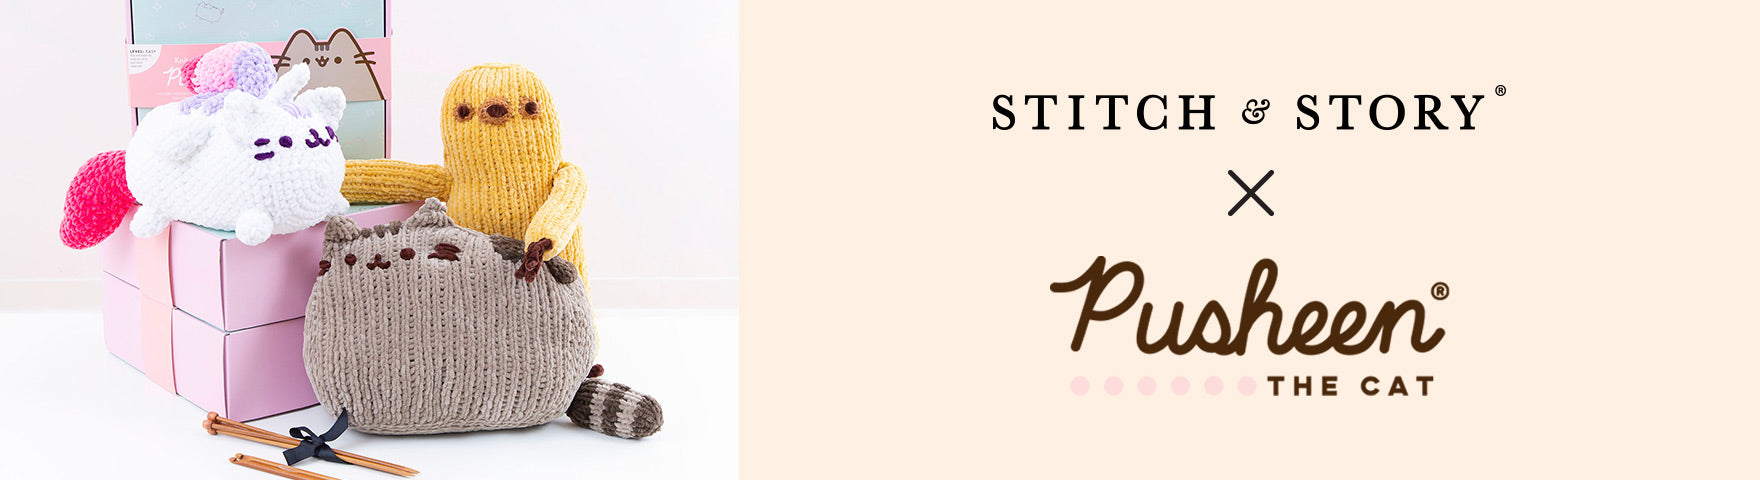 Pusheen | Stitch & Story